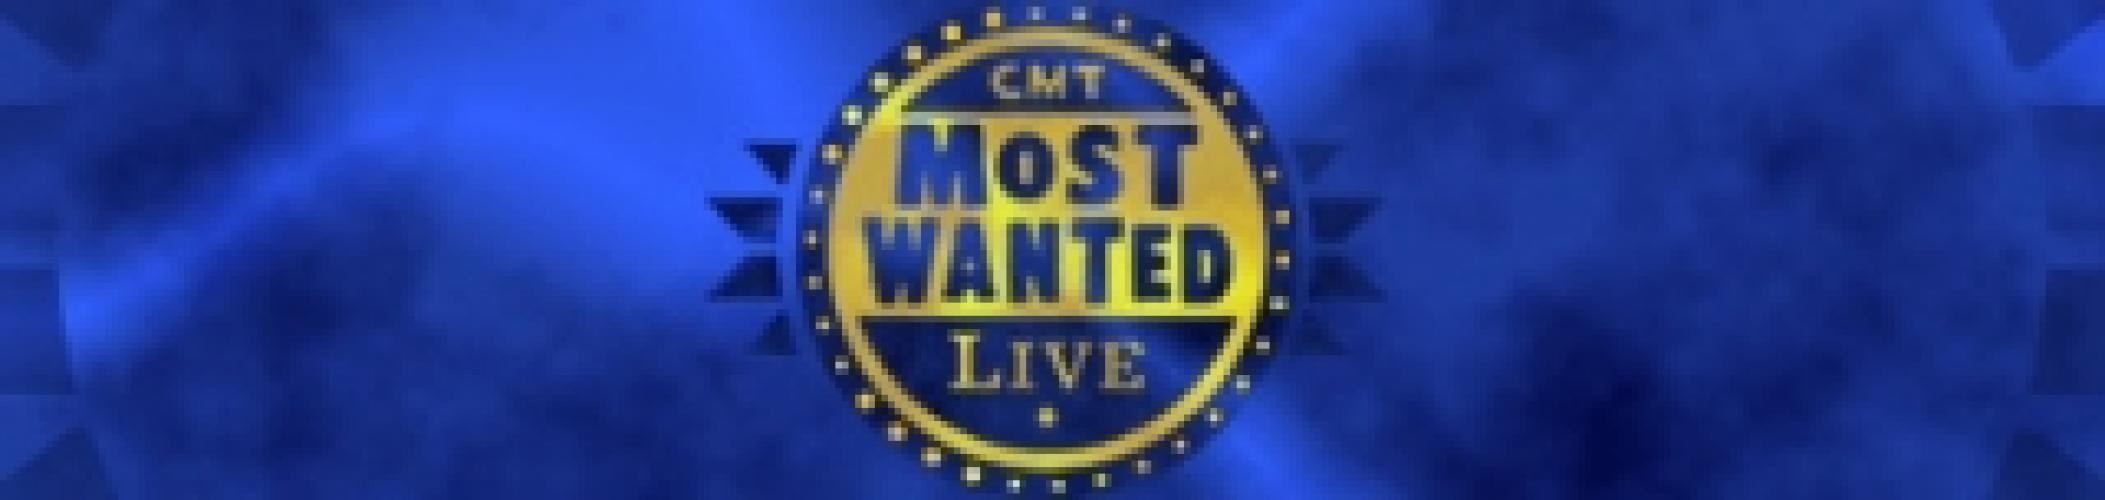 CMT Most Wanted Live next episode air date poster